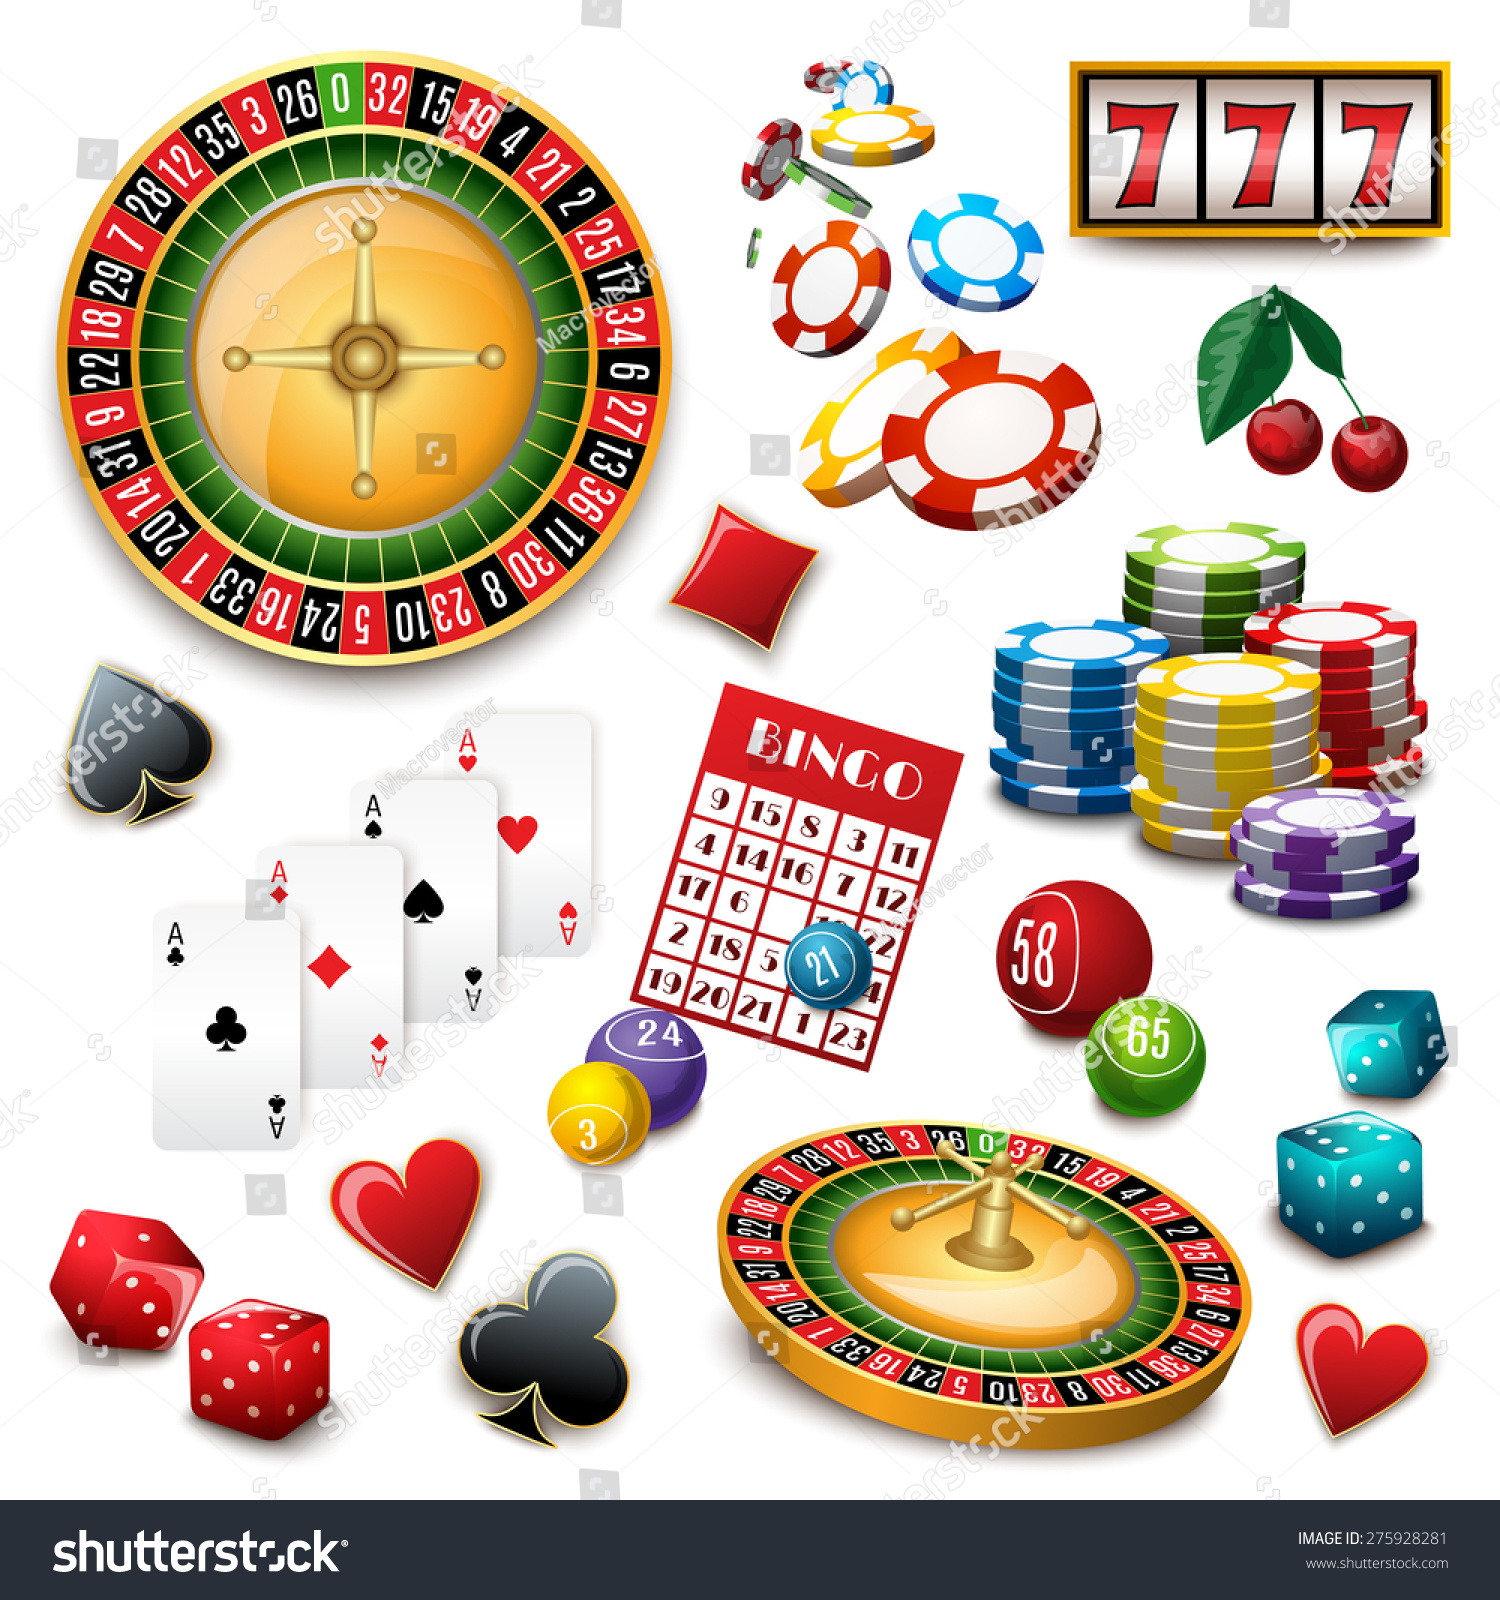 free casino games online the symbol of ra